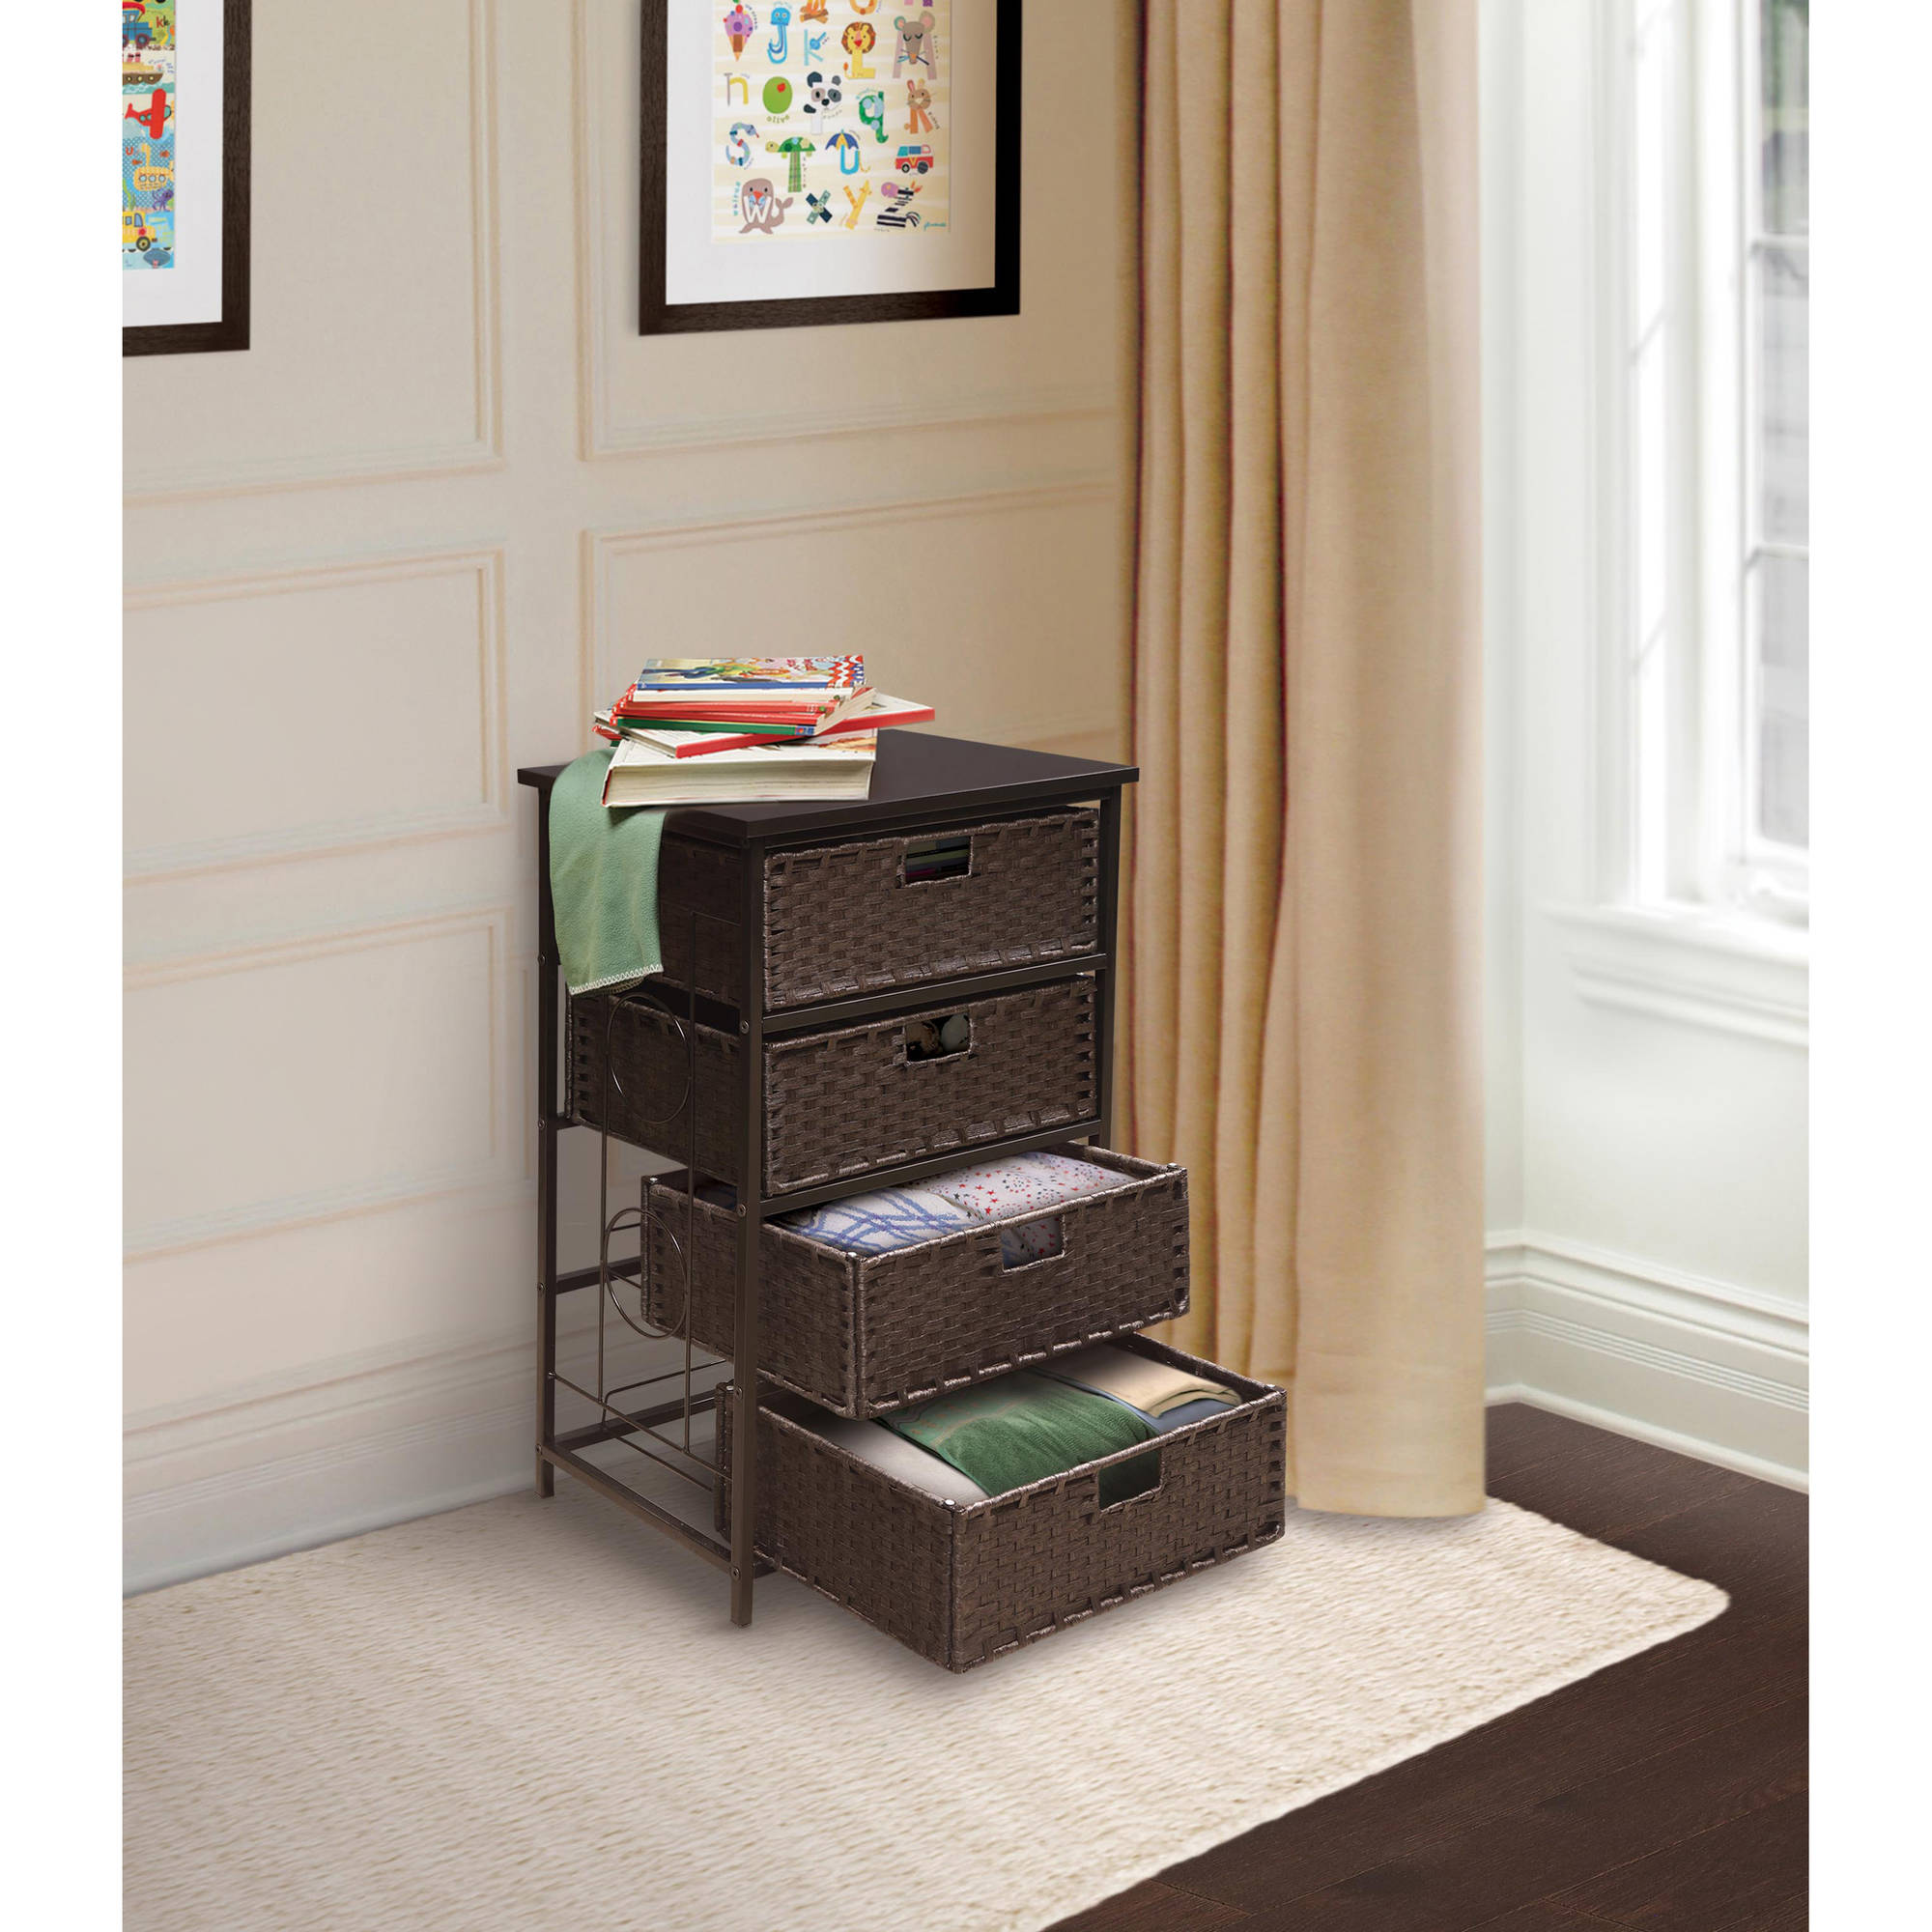 Badger Basket August Collection Tall Four-Basket Storage Unit, Espresso